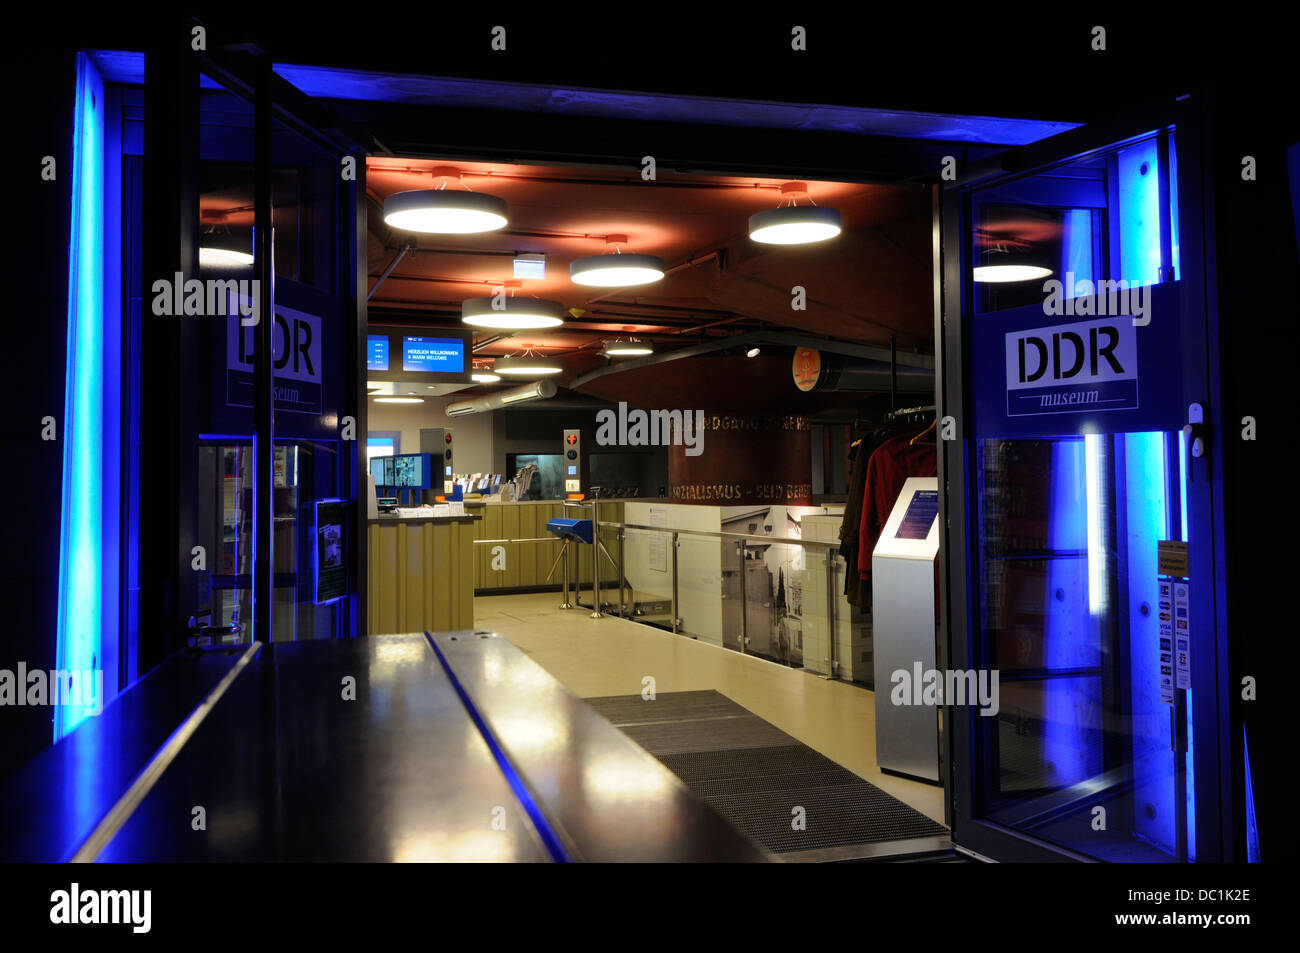 DDR Museum, Berlin, Germany. - Stock Image